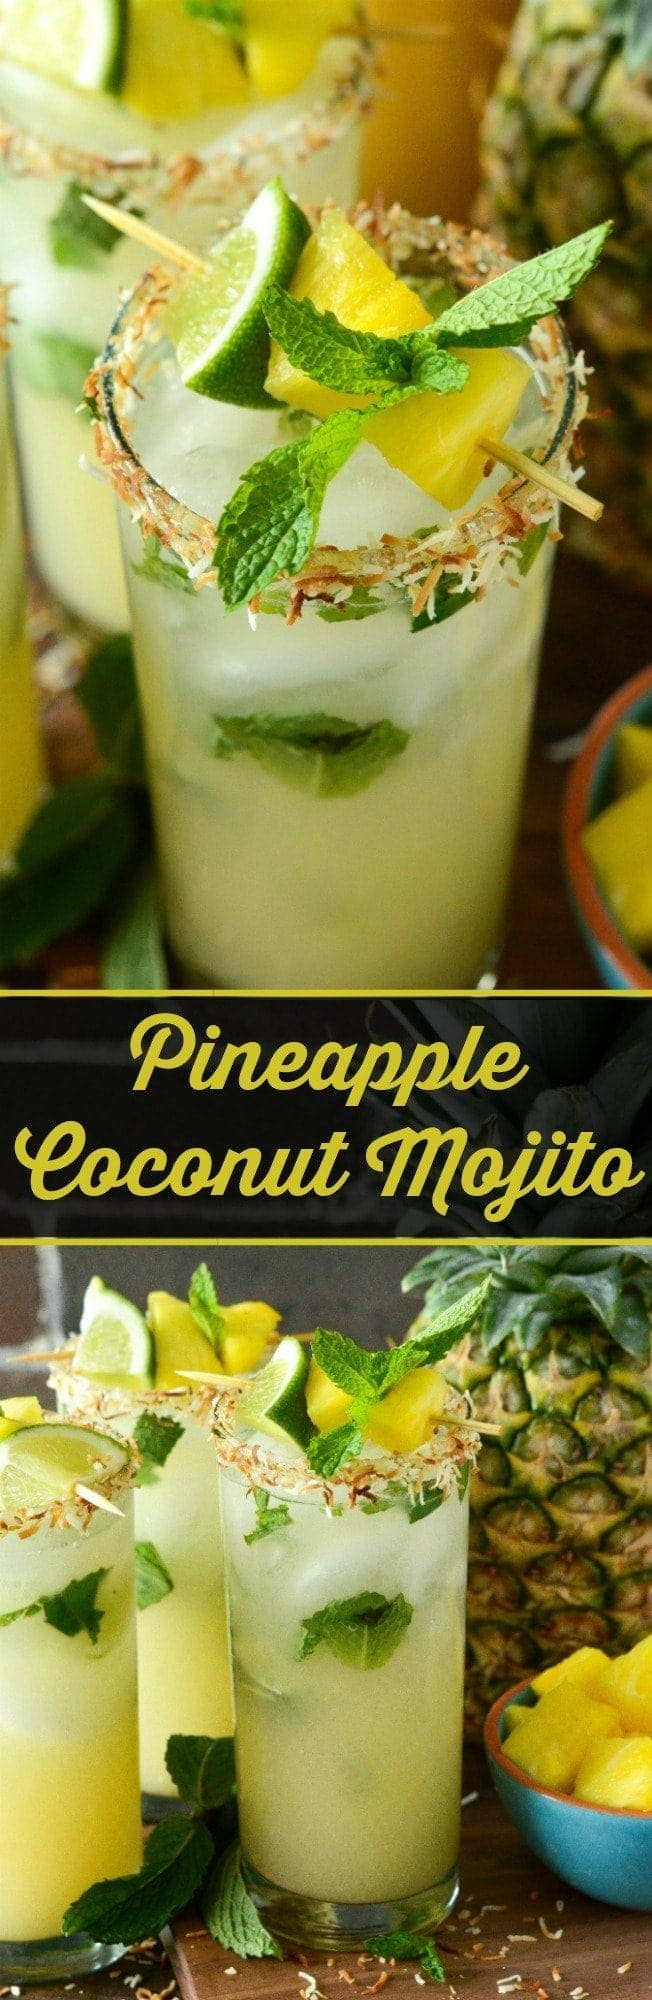 Pineapple Coconut Mojito: the classic mint mojito is remixed with another tropical favorite, the piña colada, to create the ultimate fresh summer rum cocktail!